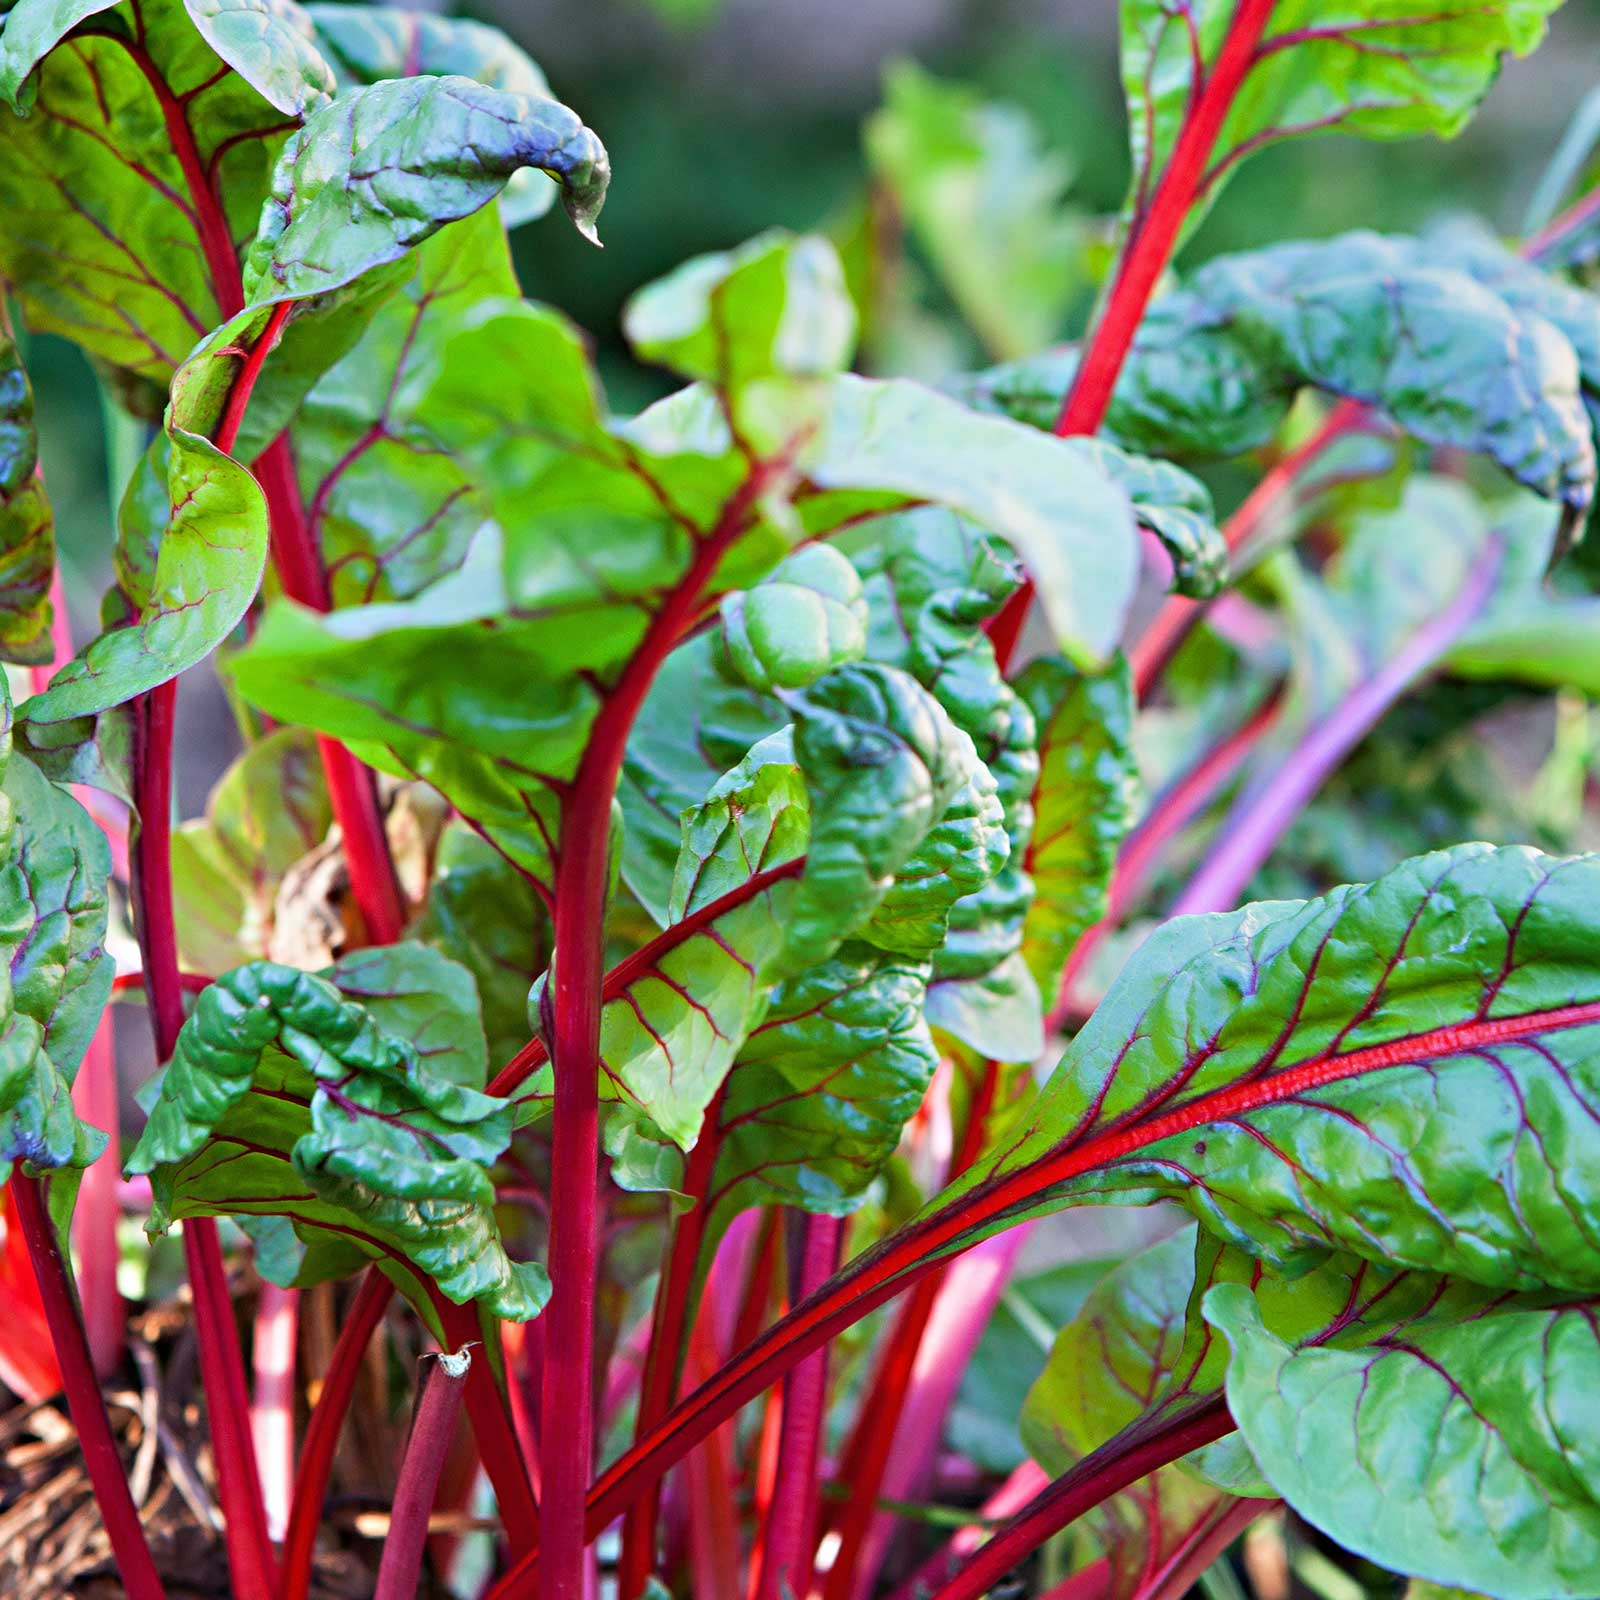 Rhubarb Swiss Chard Garden Seeds - Rhubarb - 5 Lbs Bulk - Non-GMO, Heirloom Vegetable Gardening Seeds